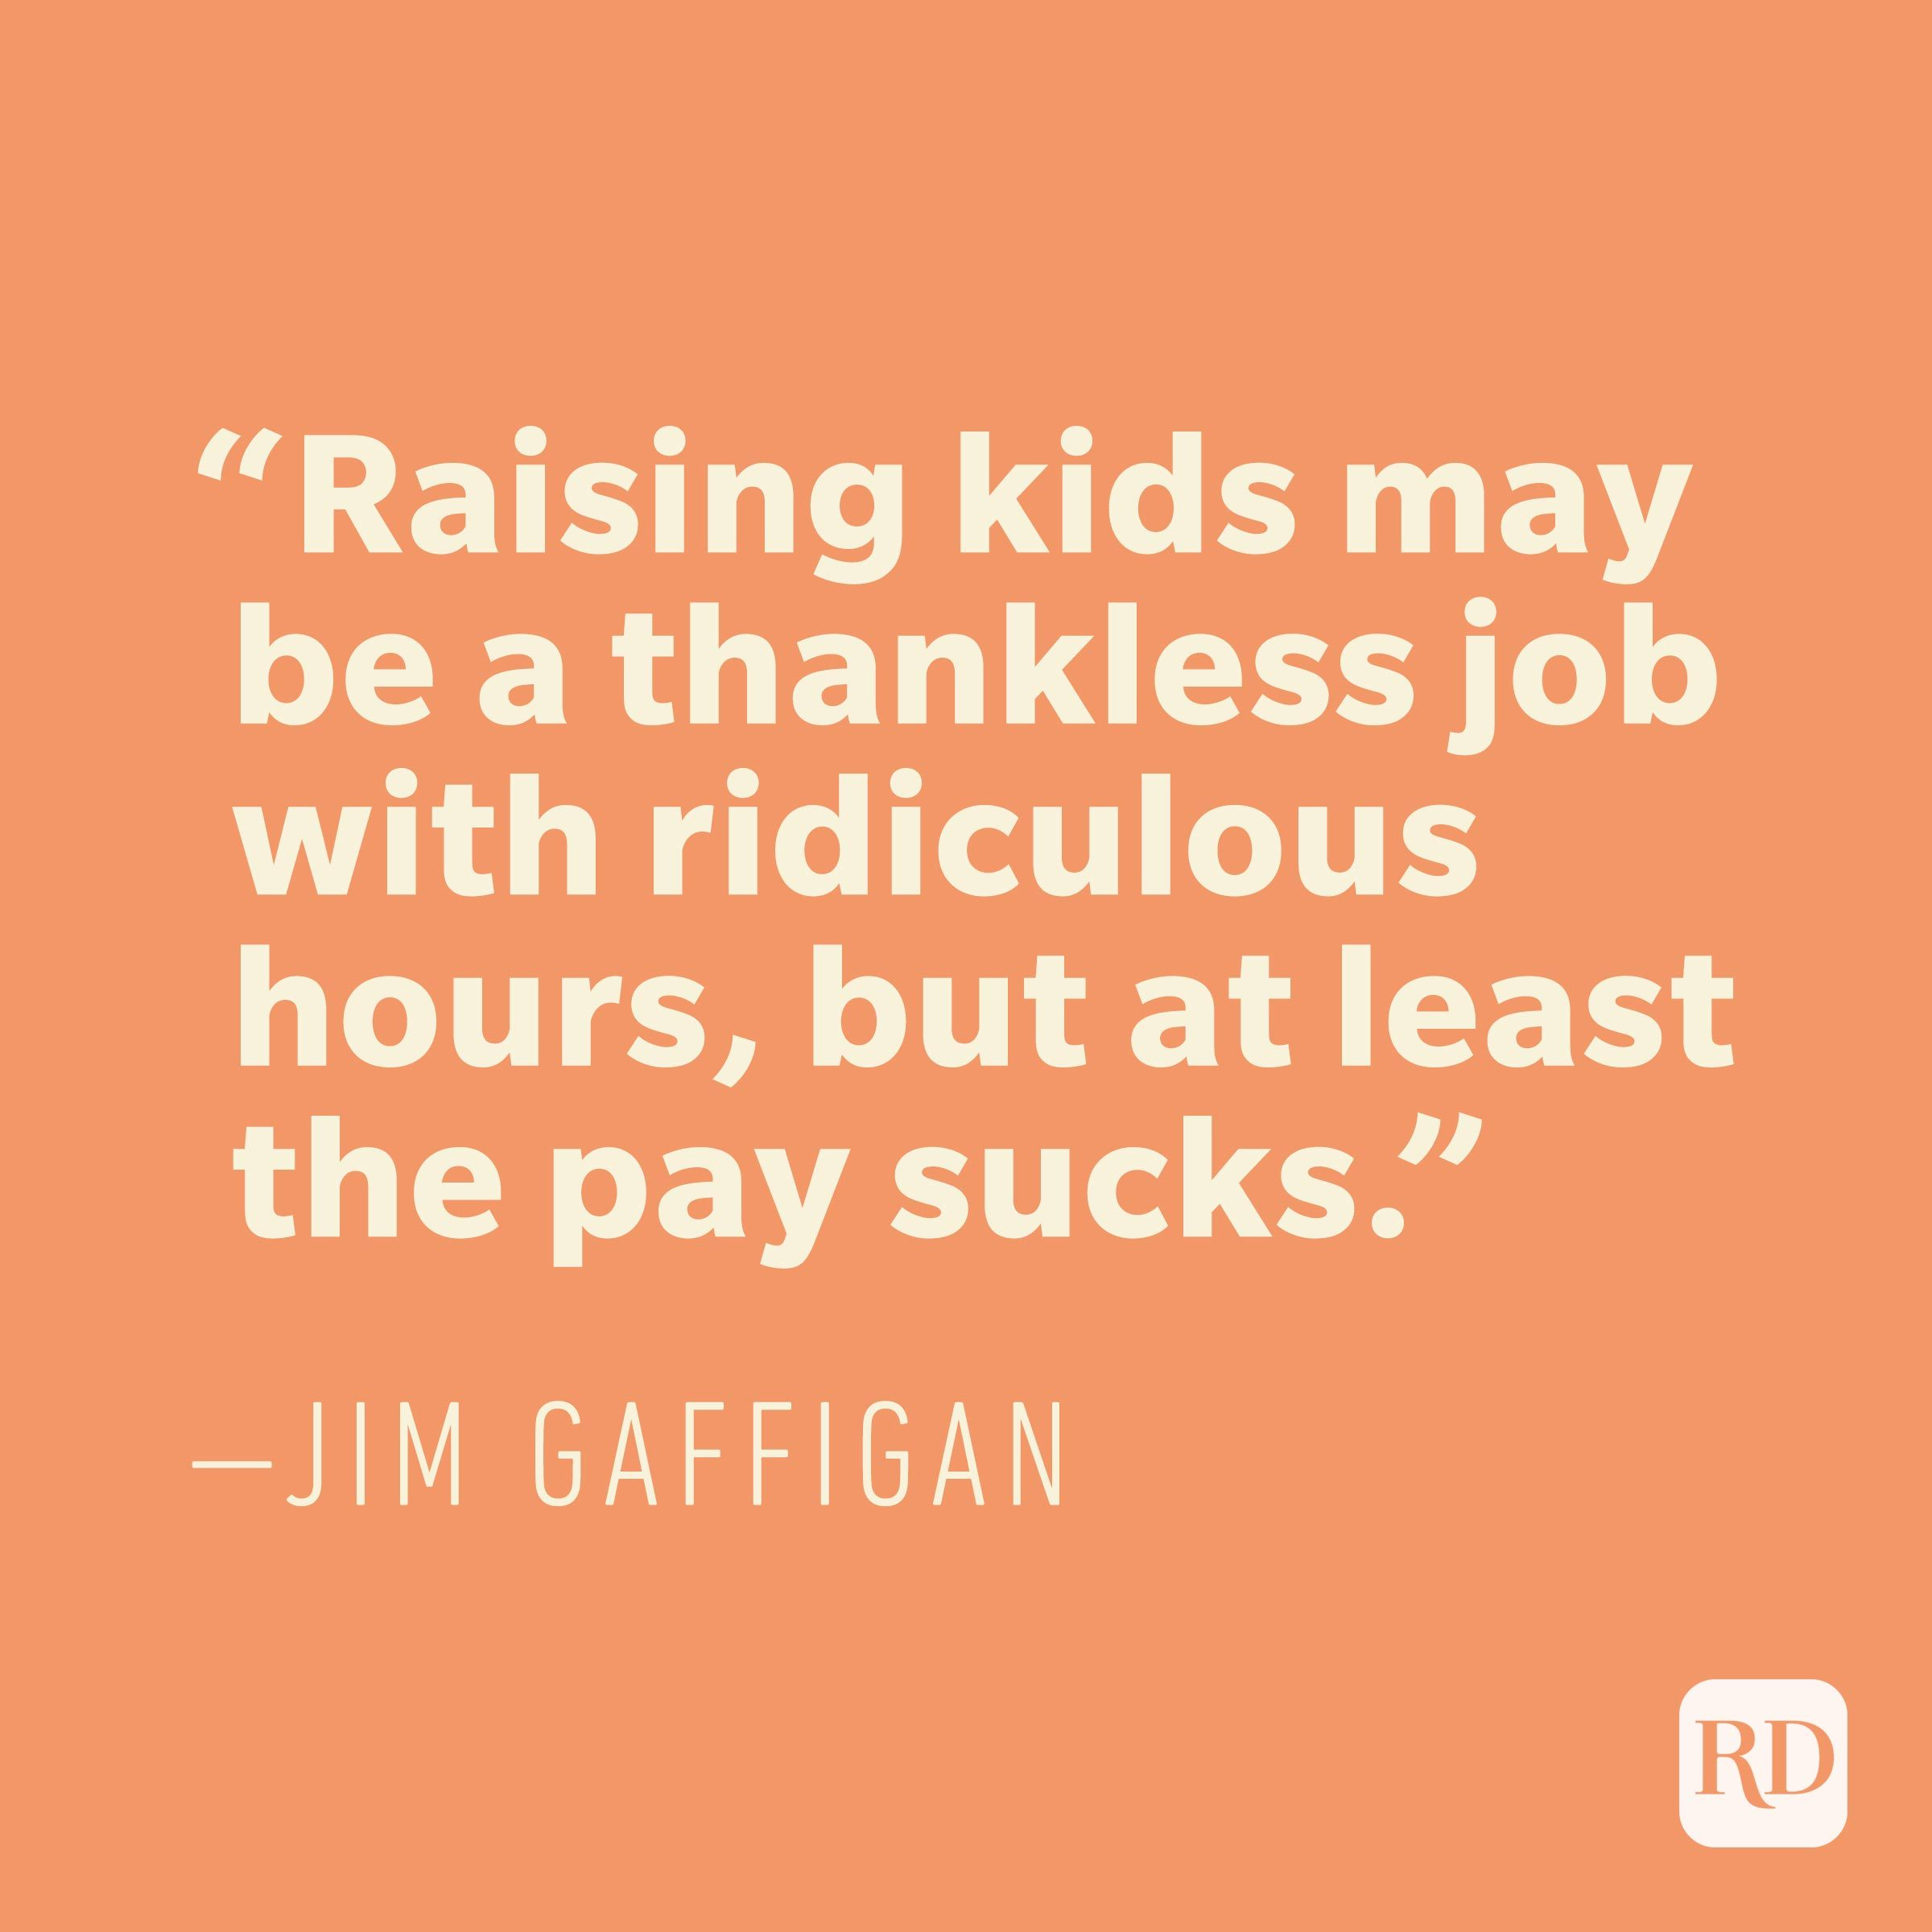 """Raising kids may be a thankless job with ridiculous hours, but at least the pay sucks."" —JIM GAFFIGAN"